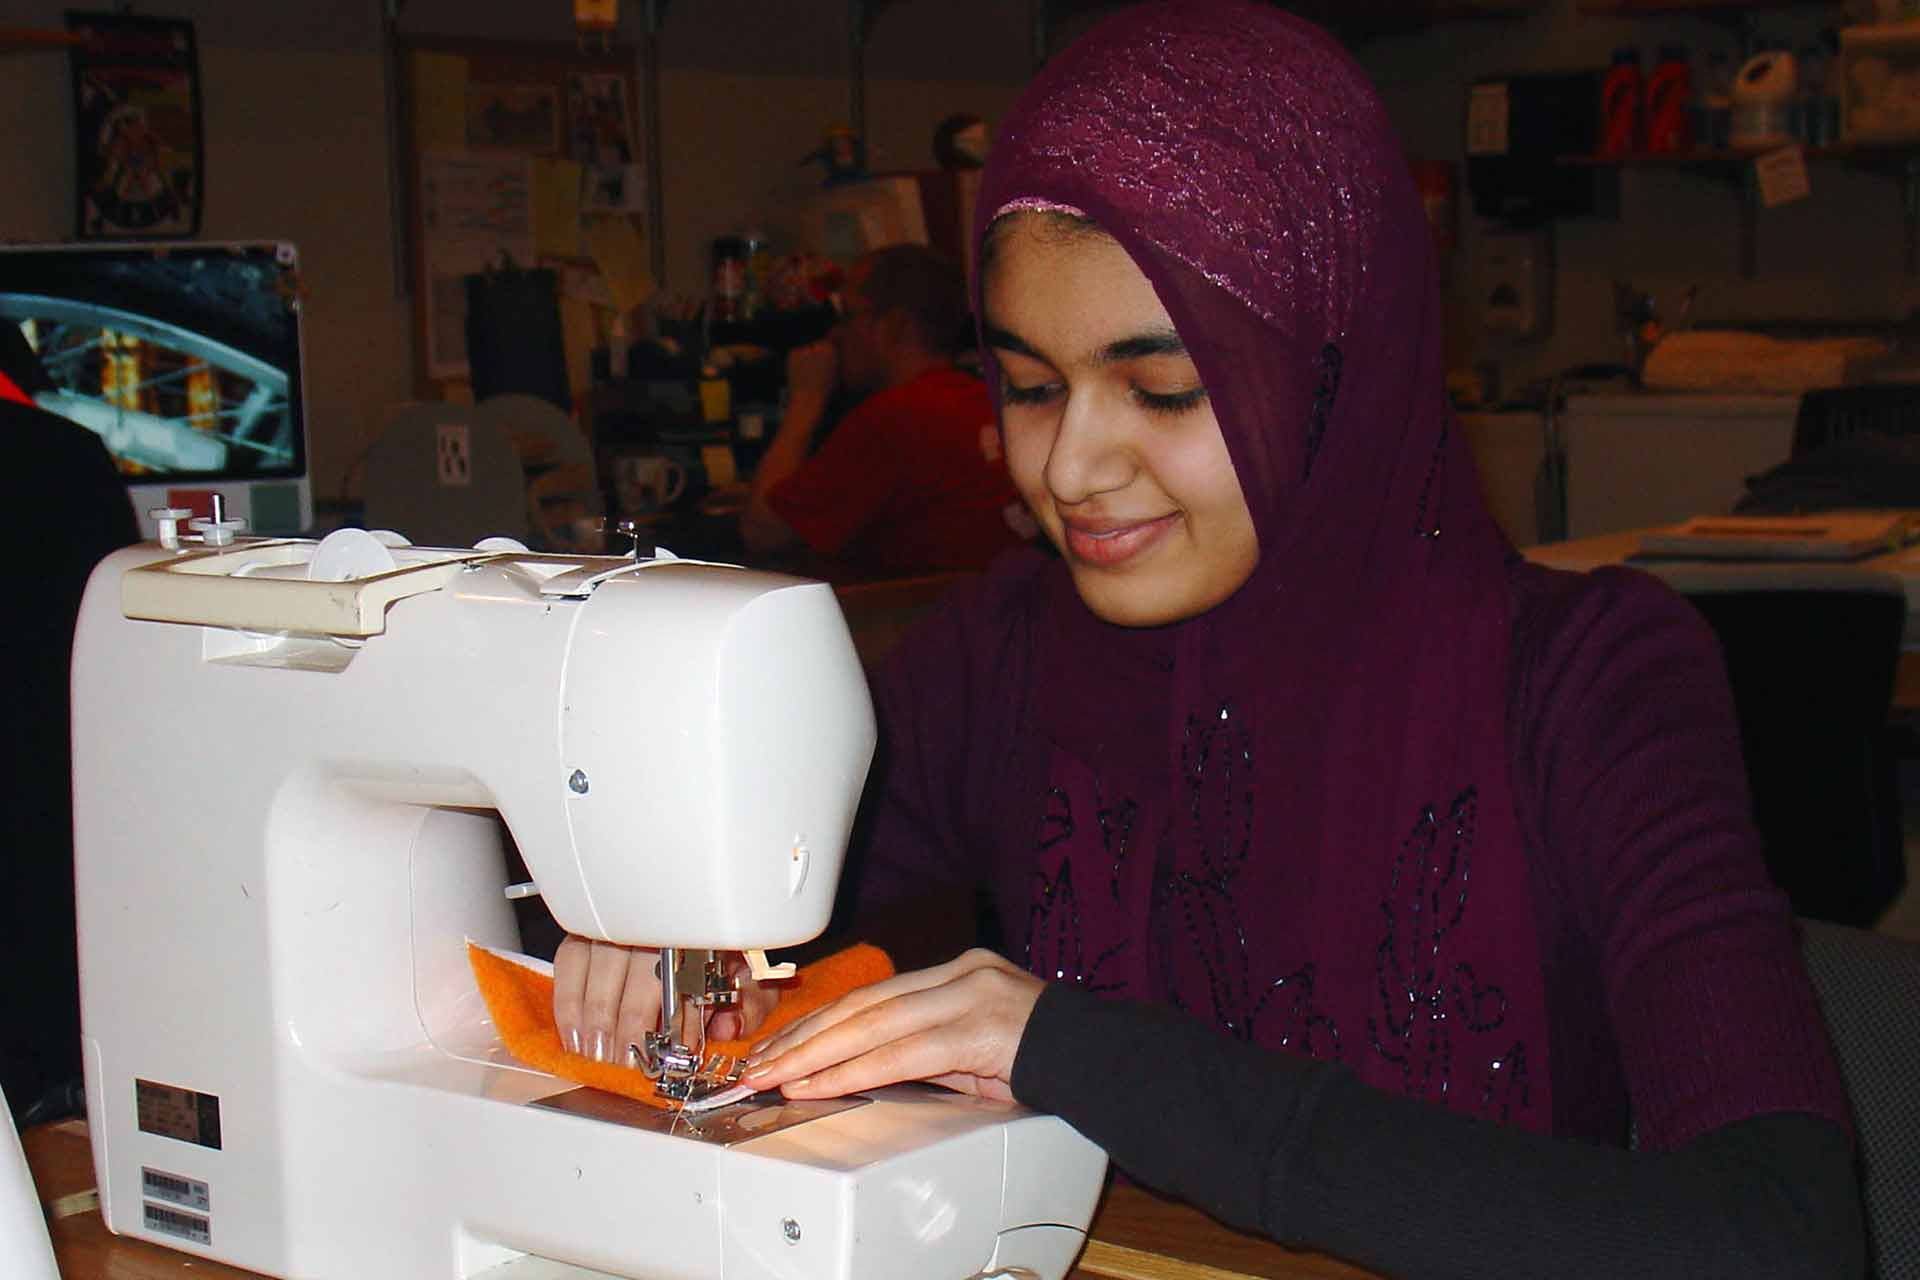 close up of a smiling student using sewing machine to sew fabric